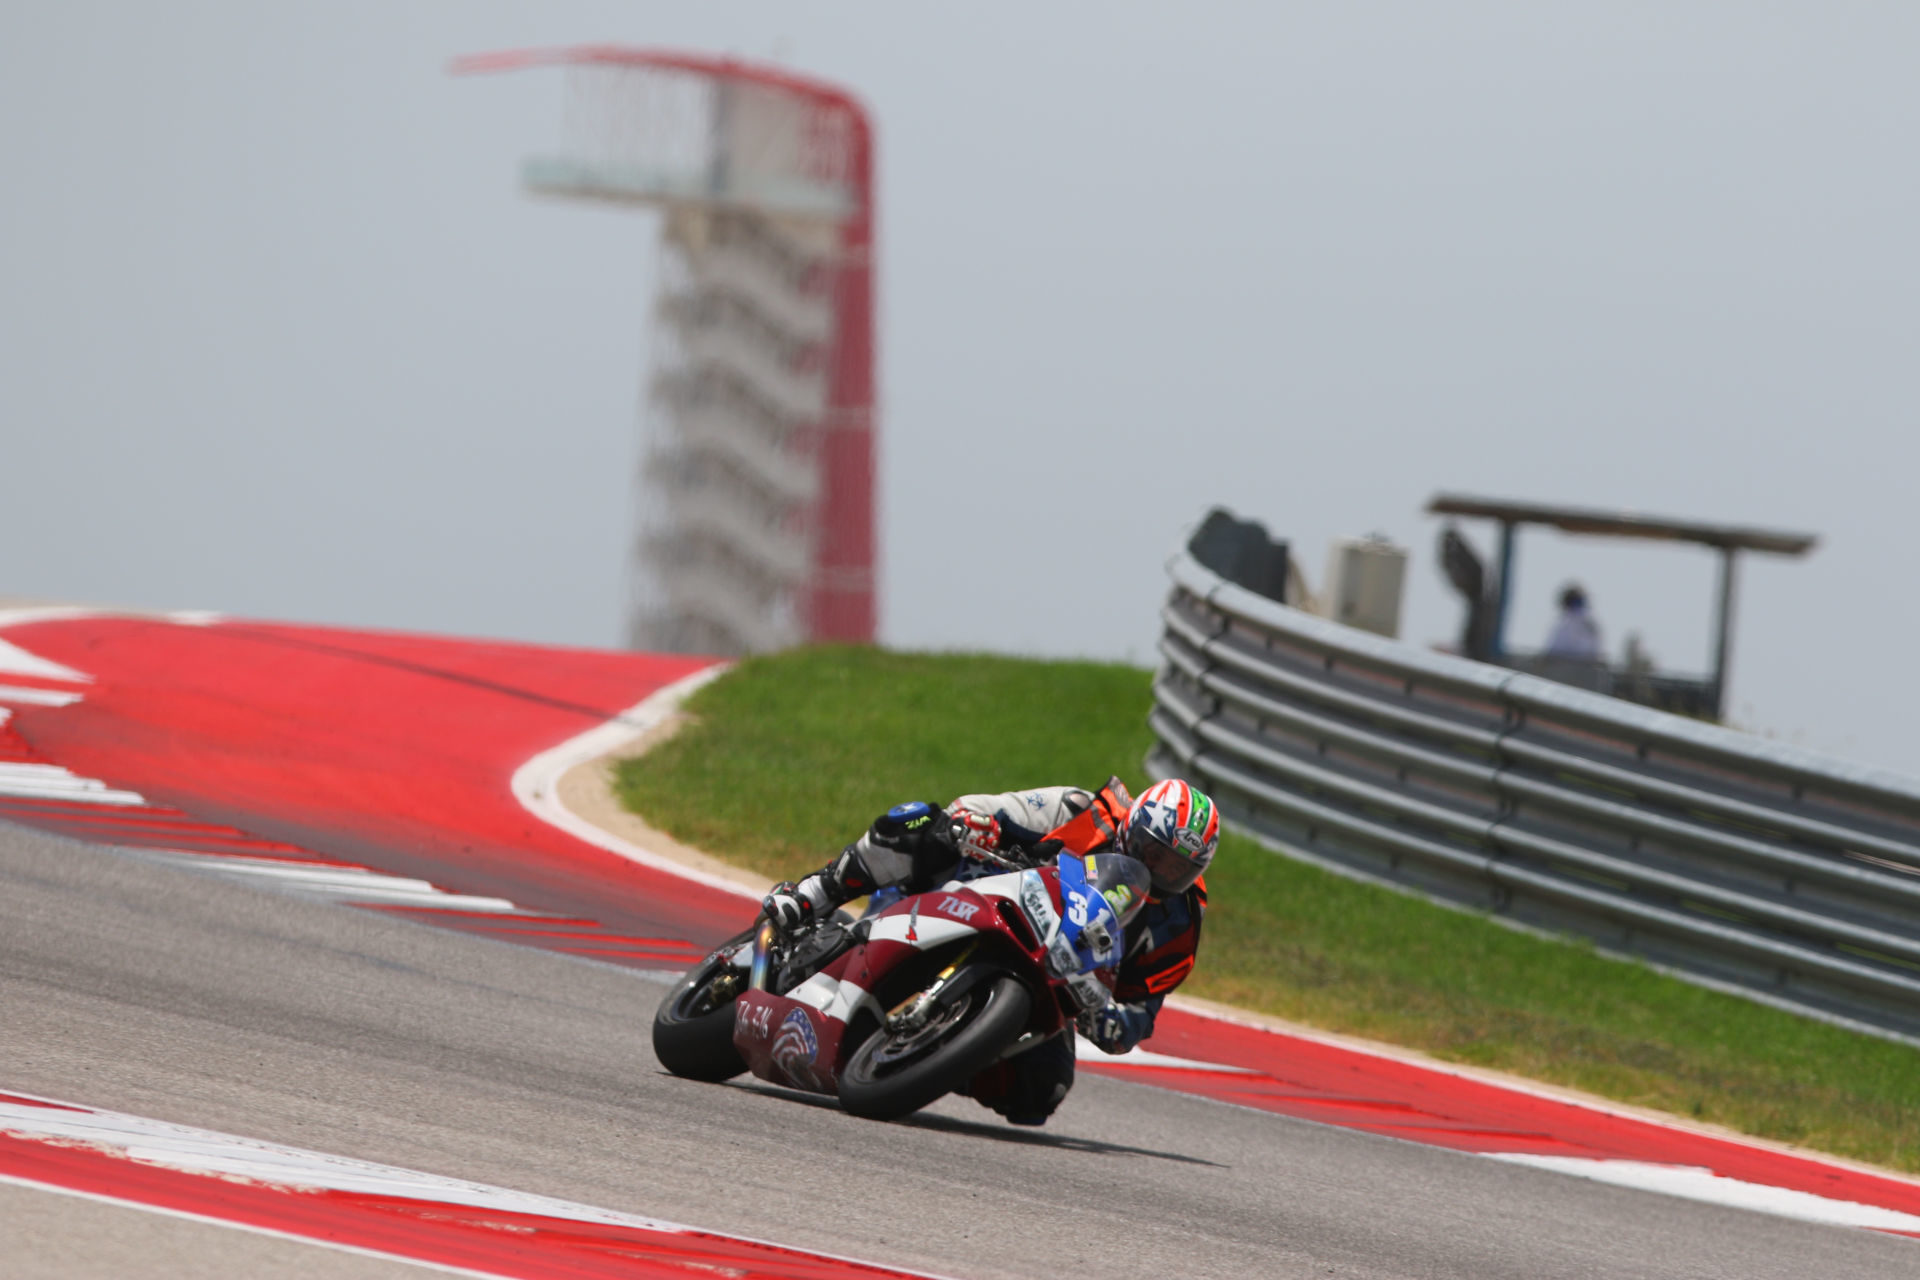 3:16 Trackdays owner Ignacio Pedregon III (316) in action at COTA. Photo by Hart Photography, courtesy of 3:16 Trackdays.